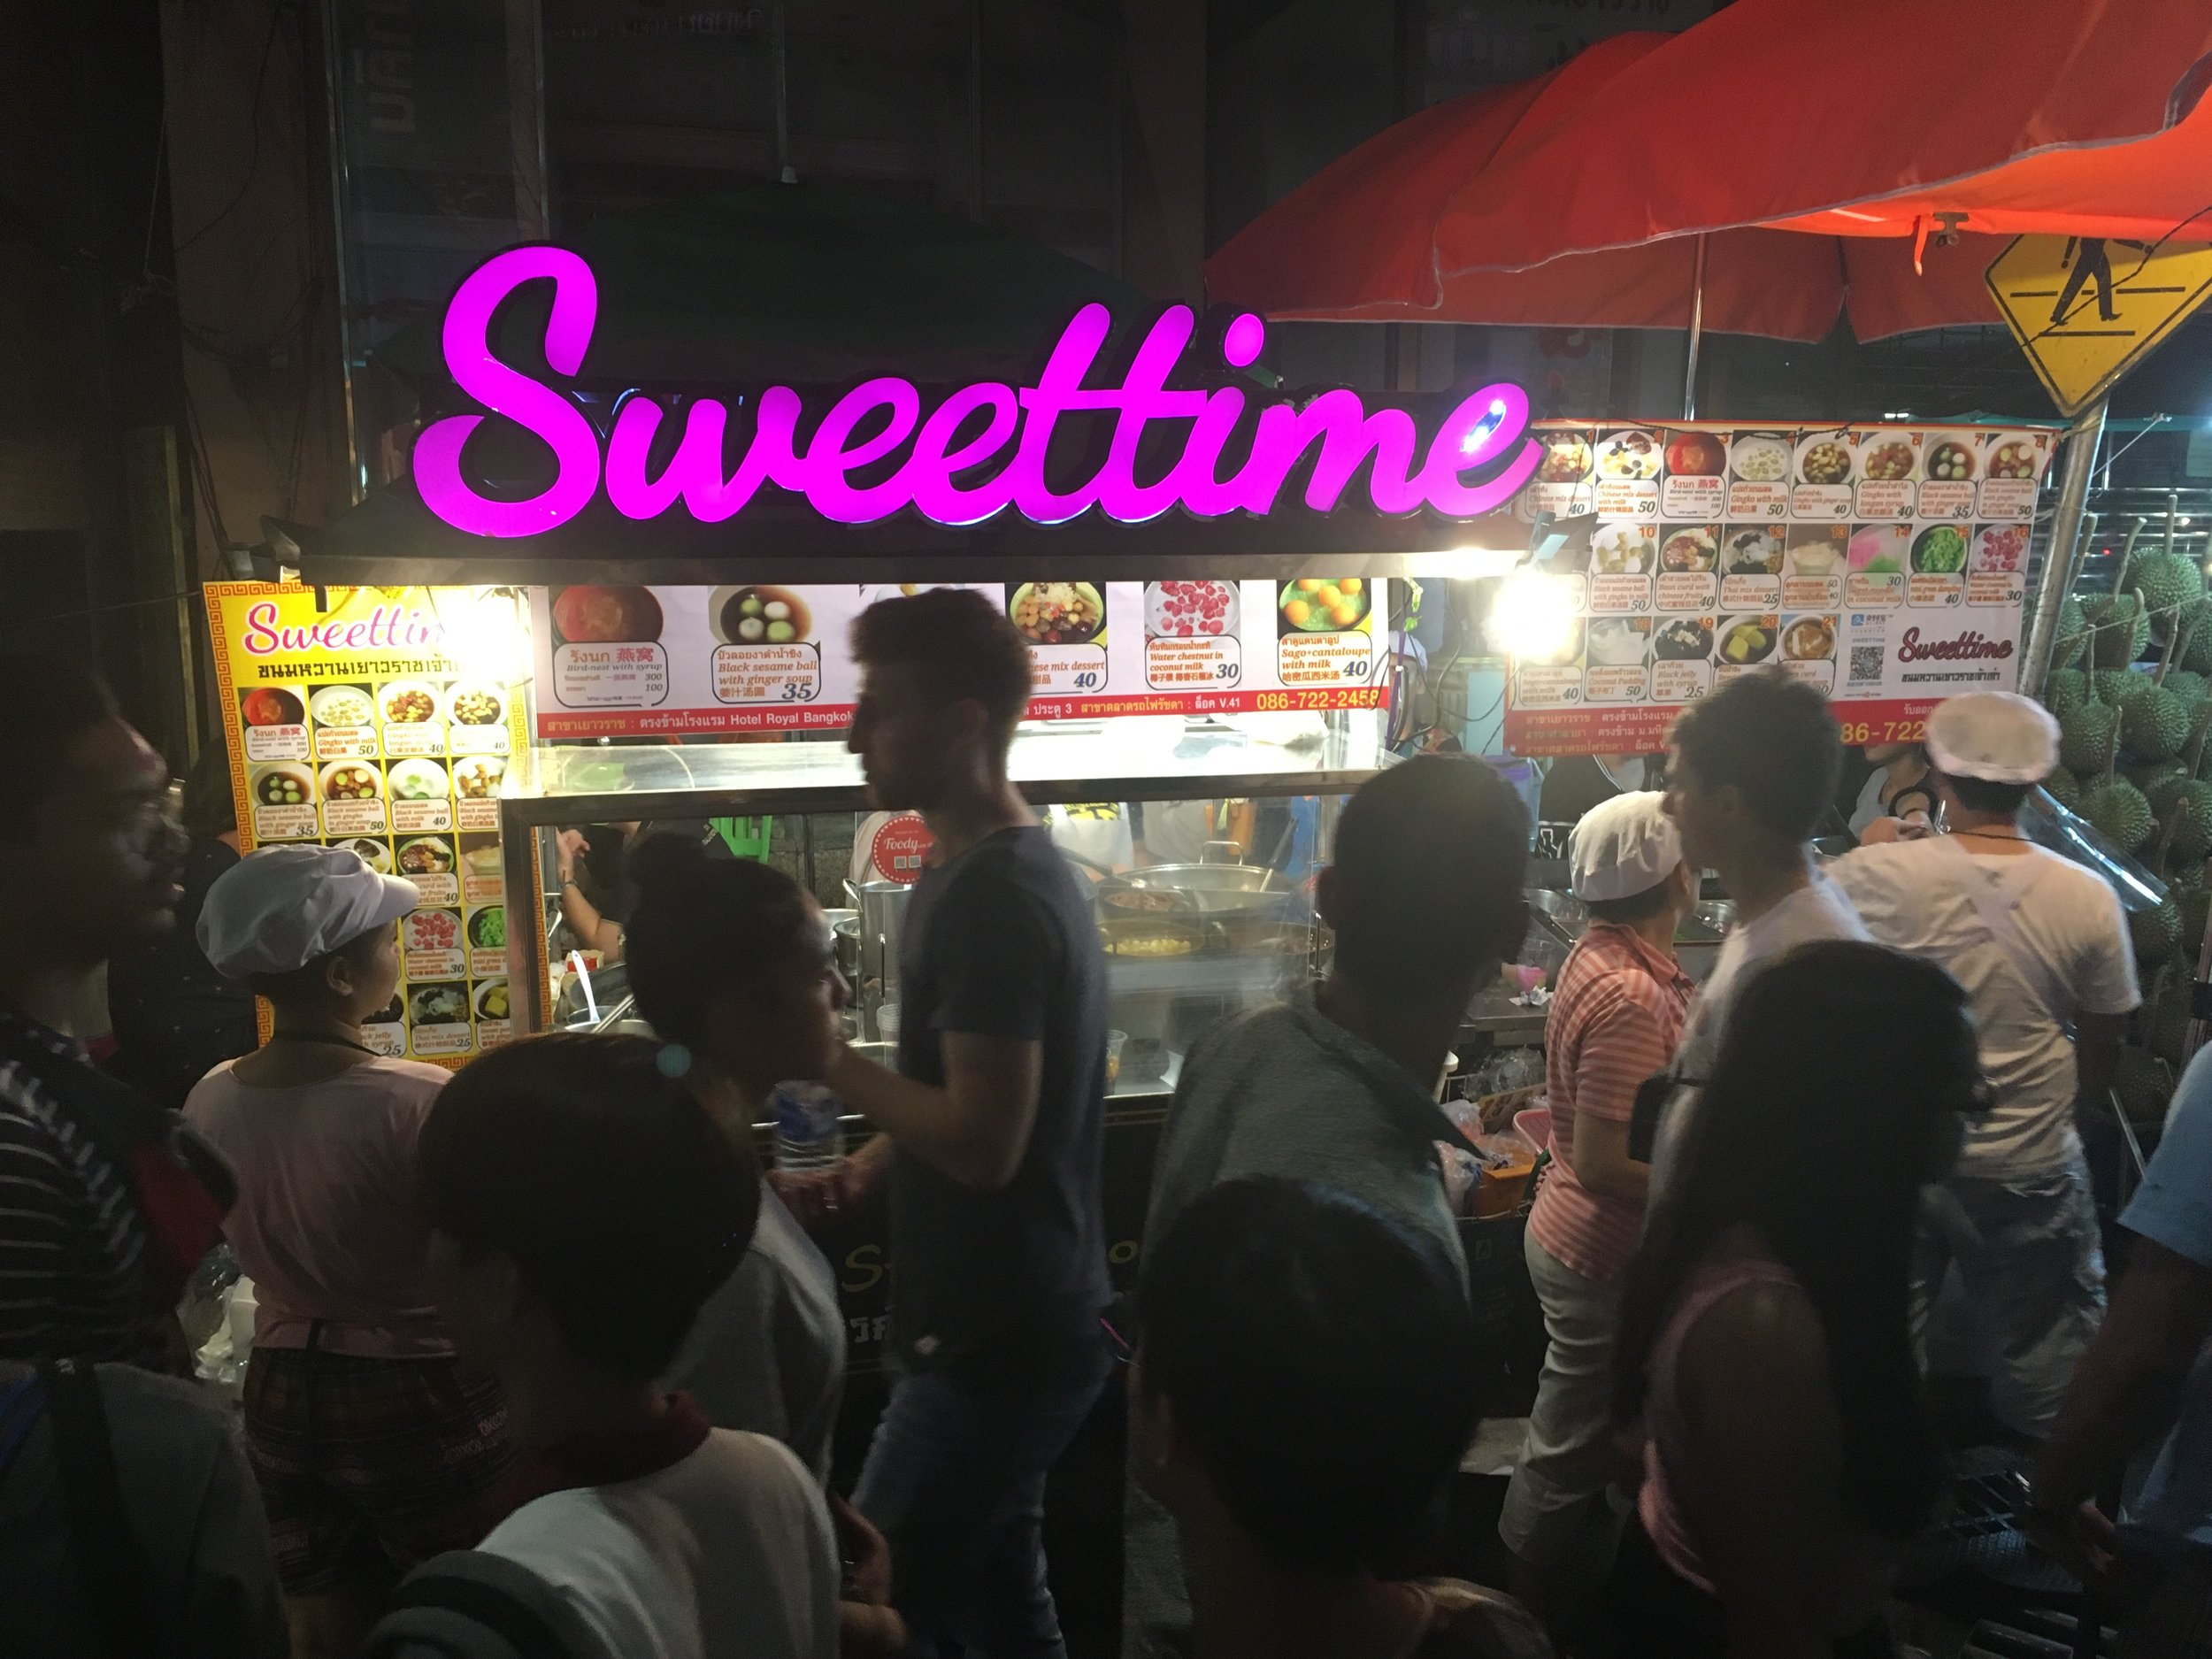 Sweettime desserts, China Town